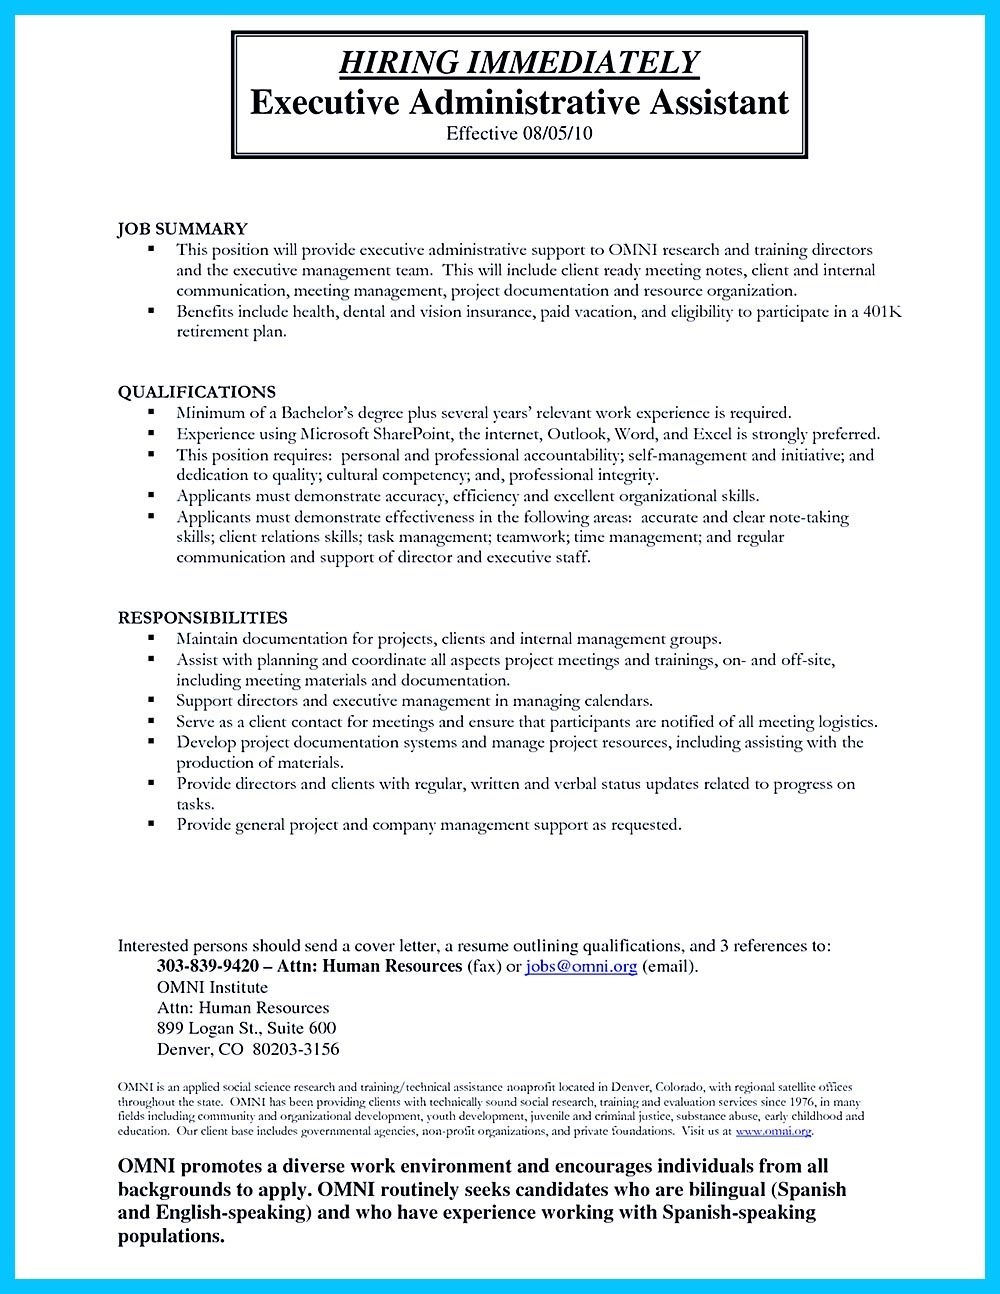 Human Resources Assistant Resume Sample In Writing Entry Level Administrative Assistant Resume You Need To .